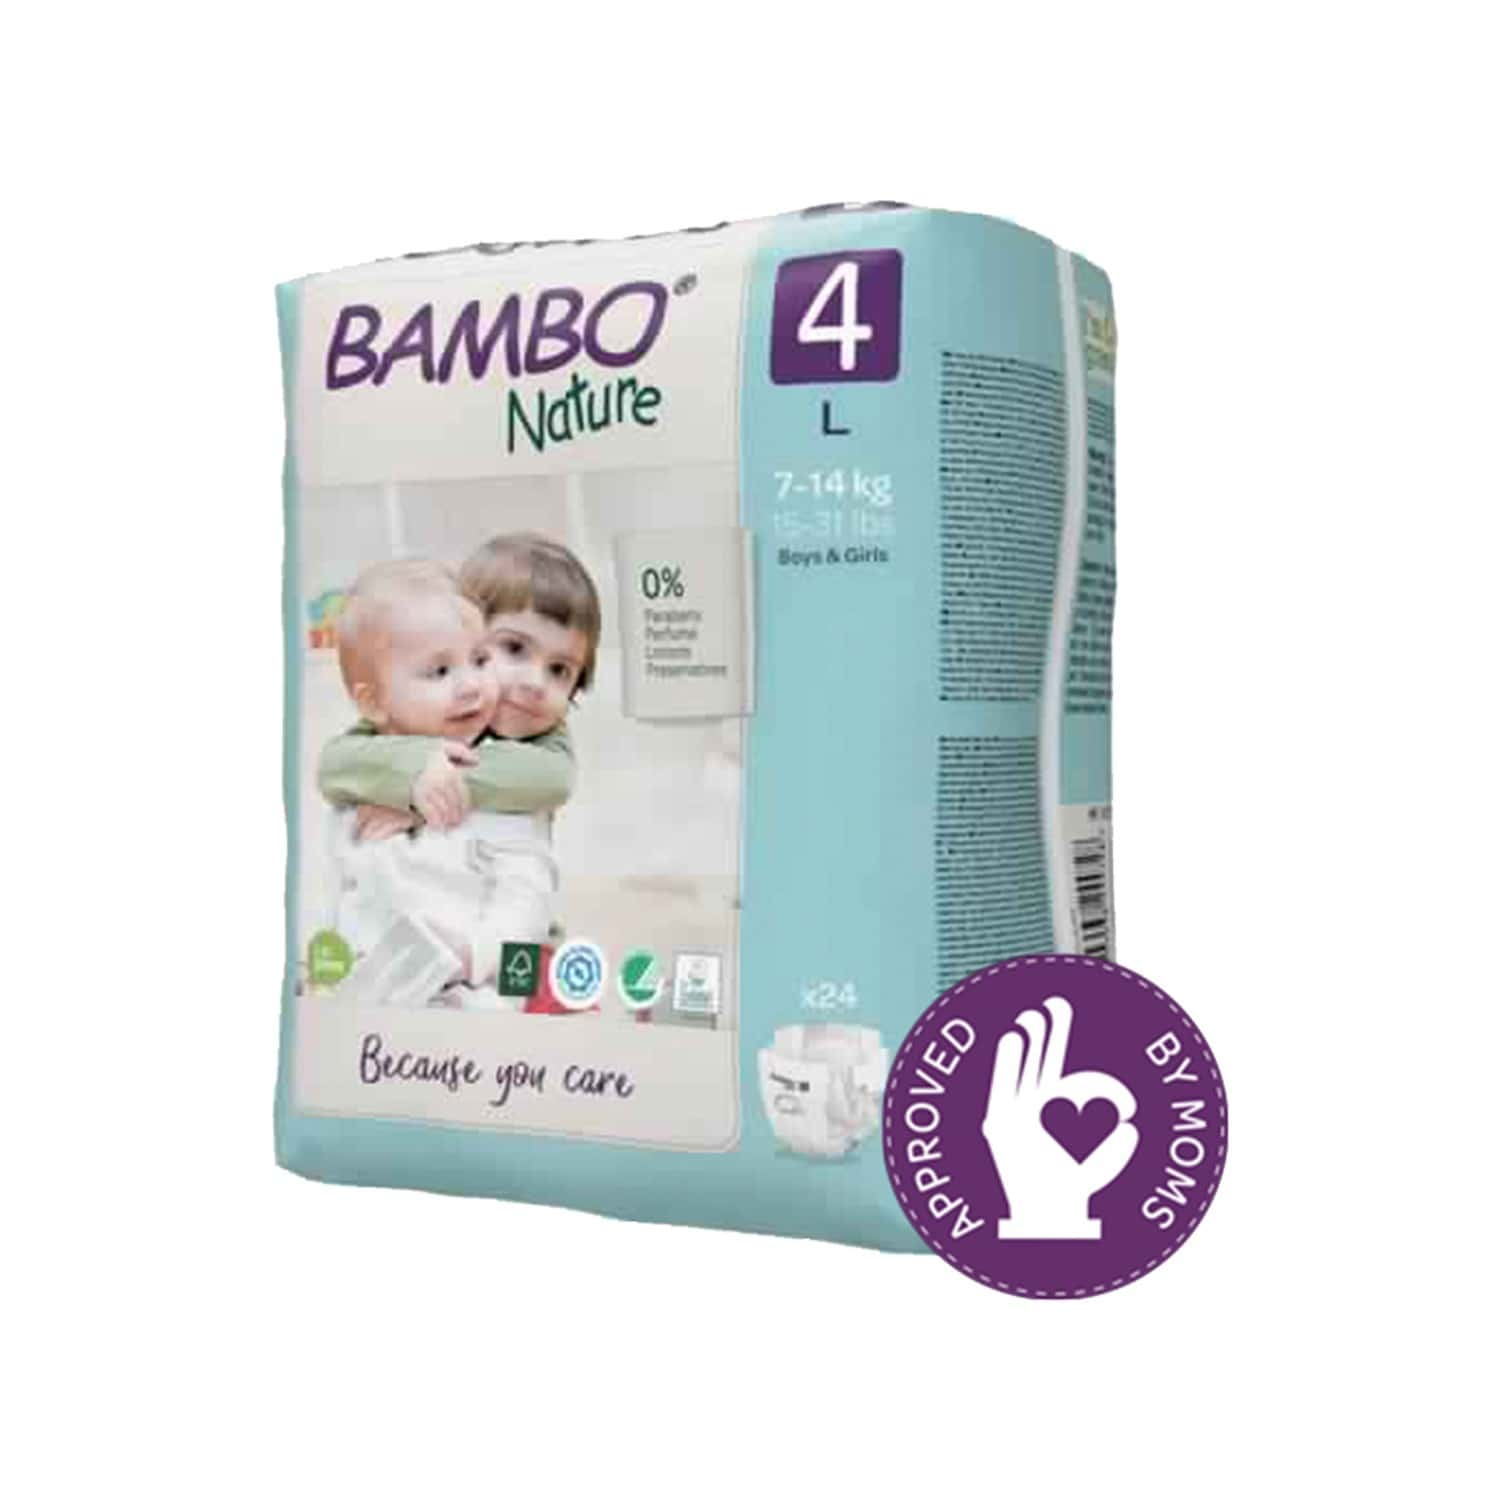 Bambo Nature Large Size Diaper With Wetness Indicator - 24 Diapers